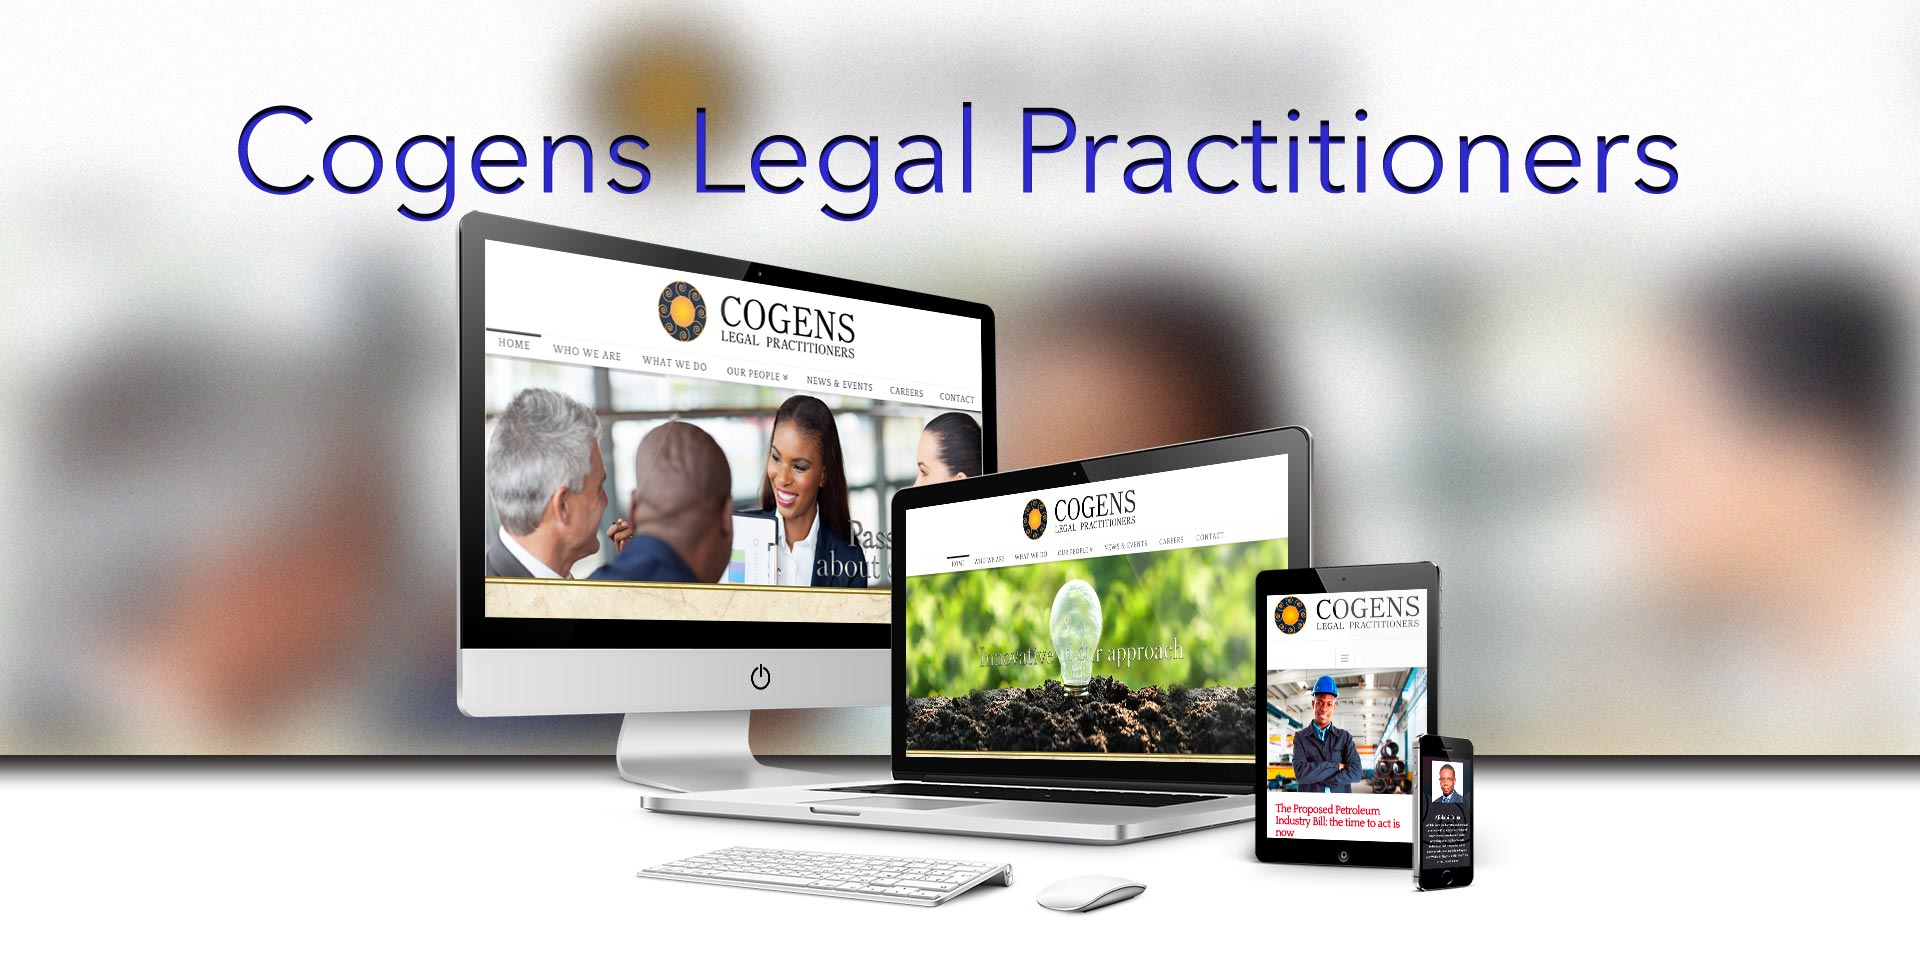 Law firm website design from HeadSmart Media